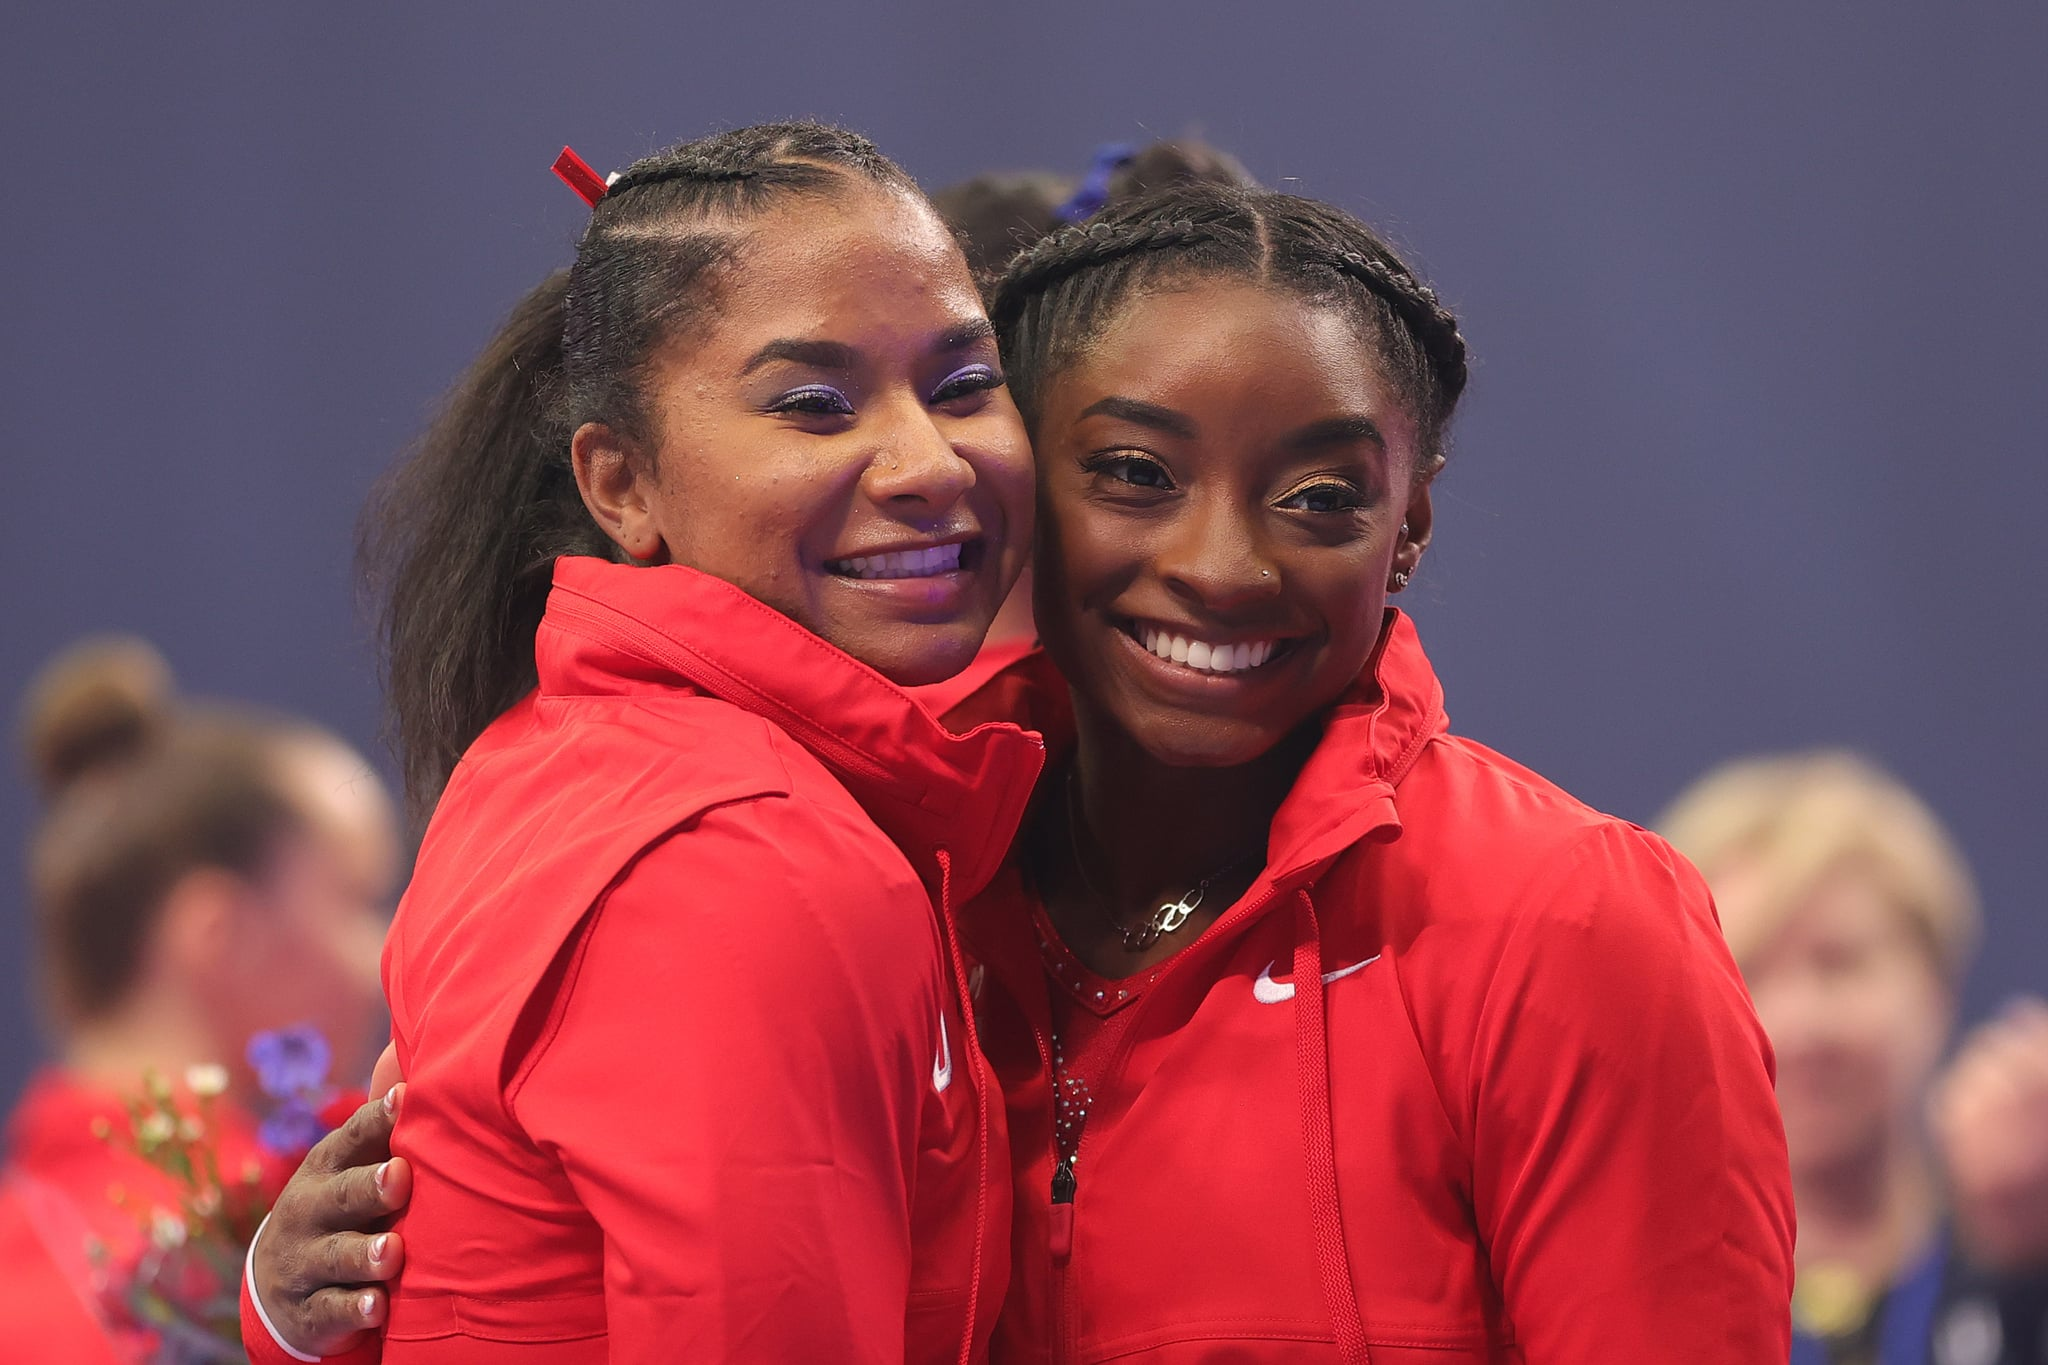 ST LOUIS, MISSOURI - JUNE 27: Jordan Chiles and Simone Biles pose following the Women's competition of the 2021 U.S. Gymnastics Olympic Trials at America's Center on June 27, 2021 in St Louis, Missouri. (Photo by Carmen Mandato/Getty Images)